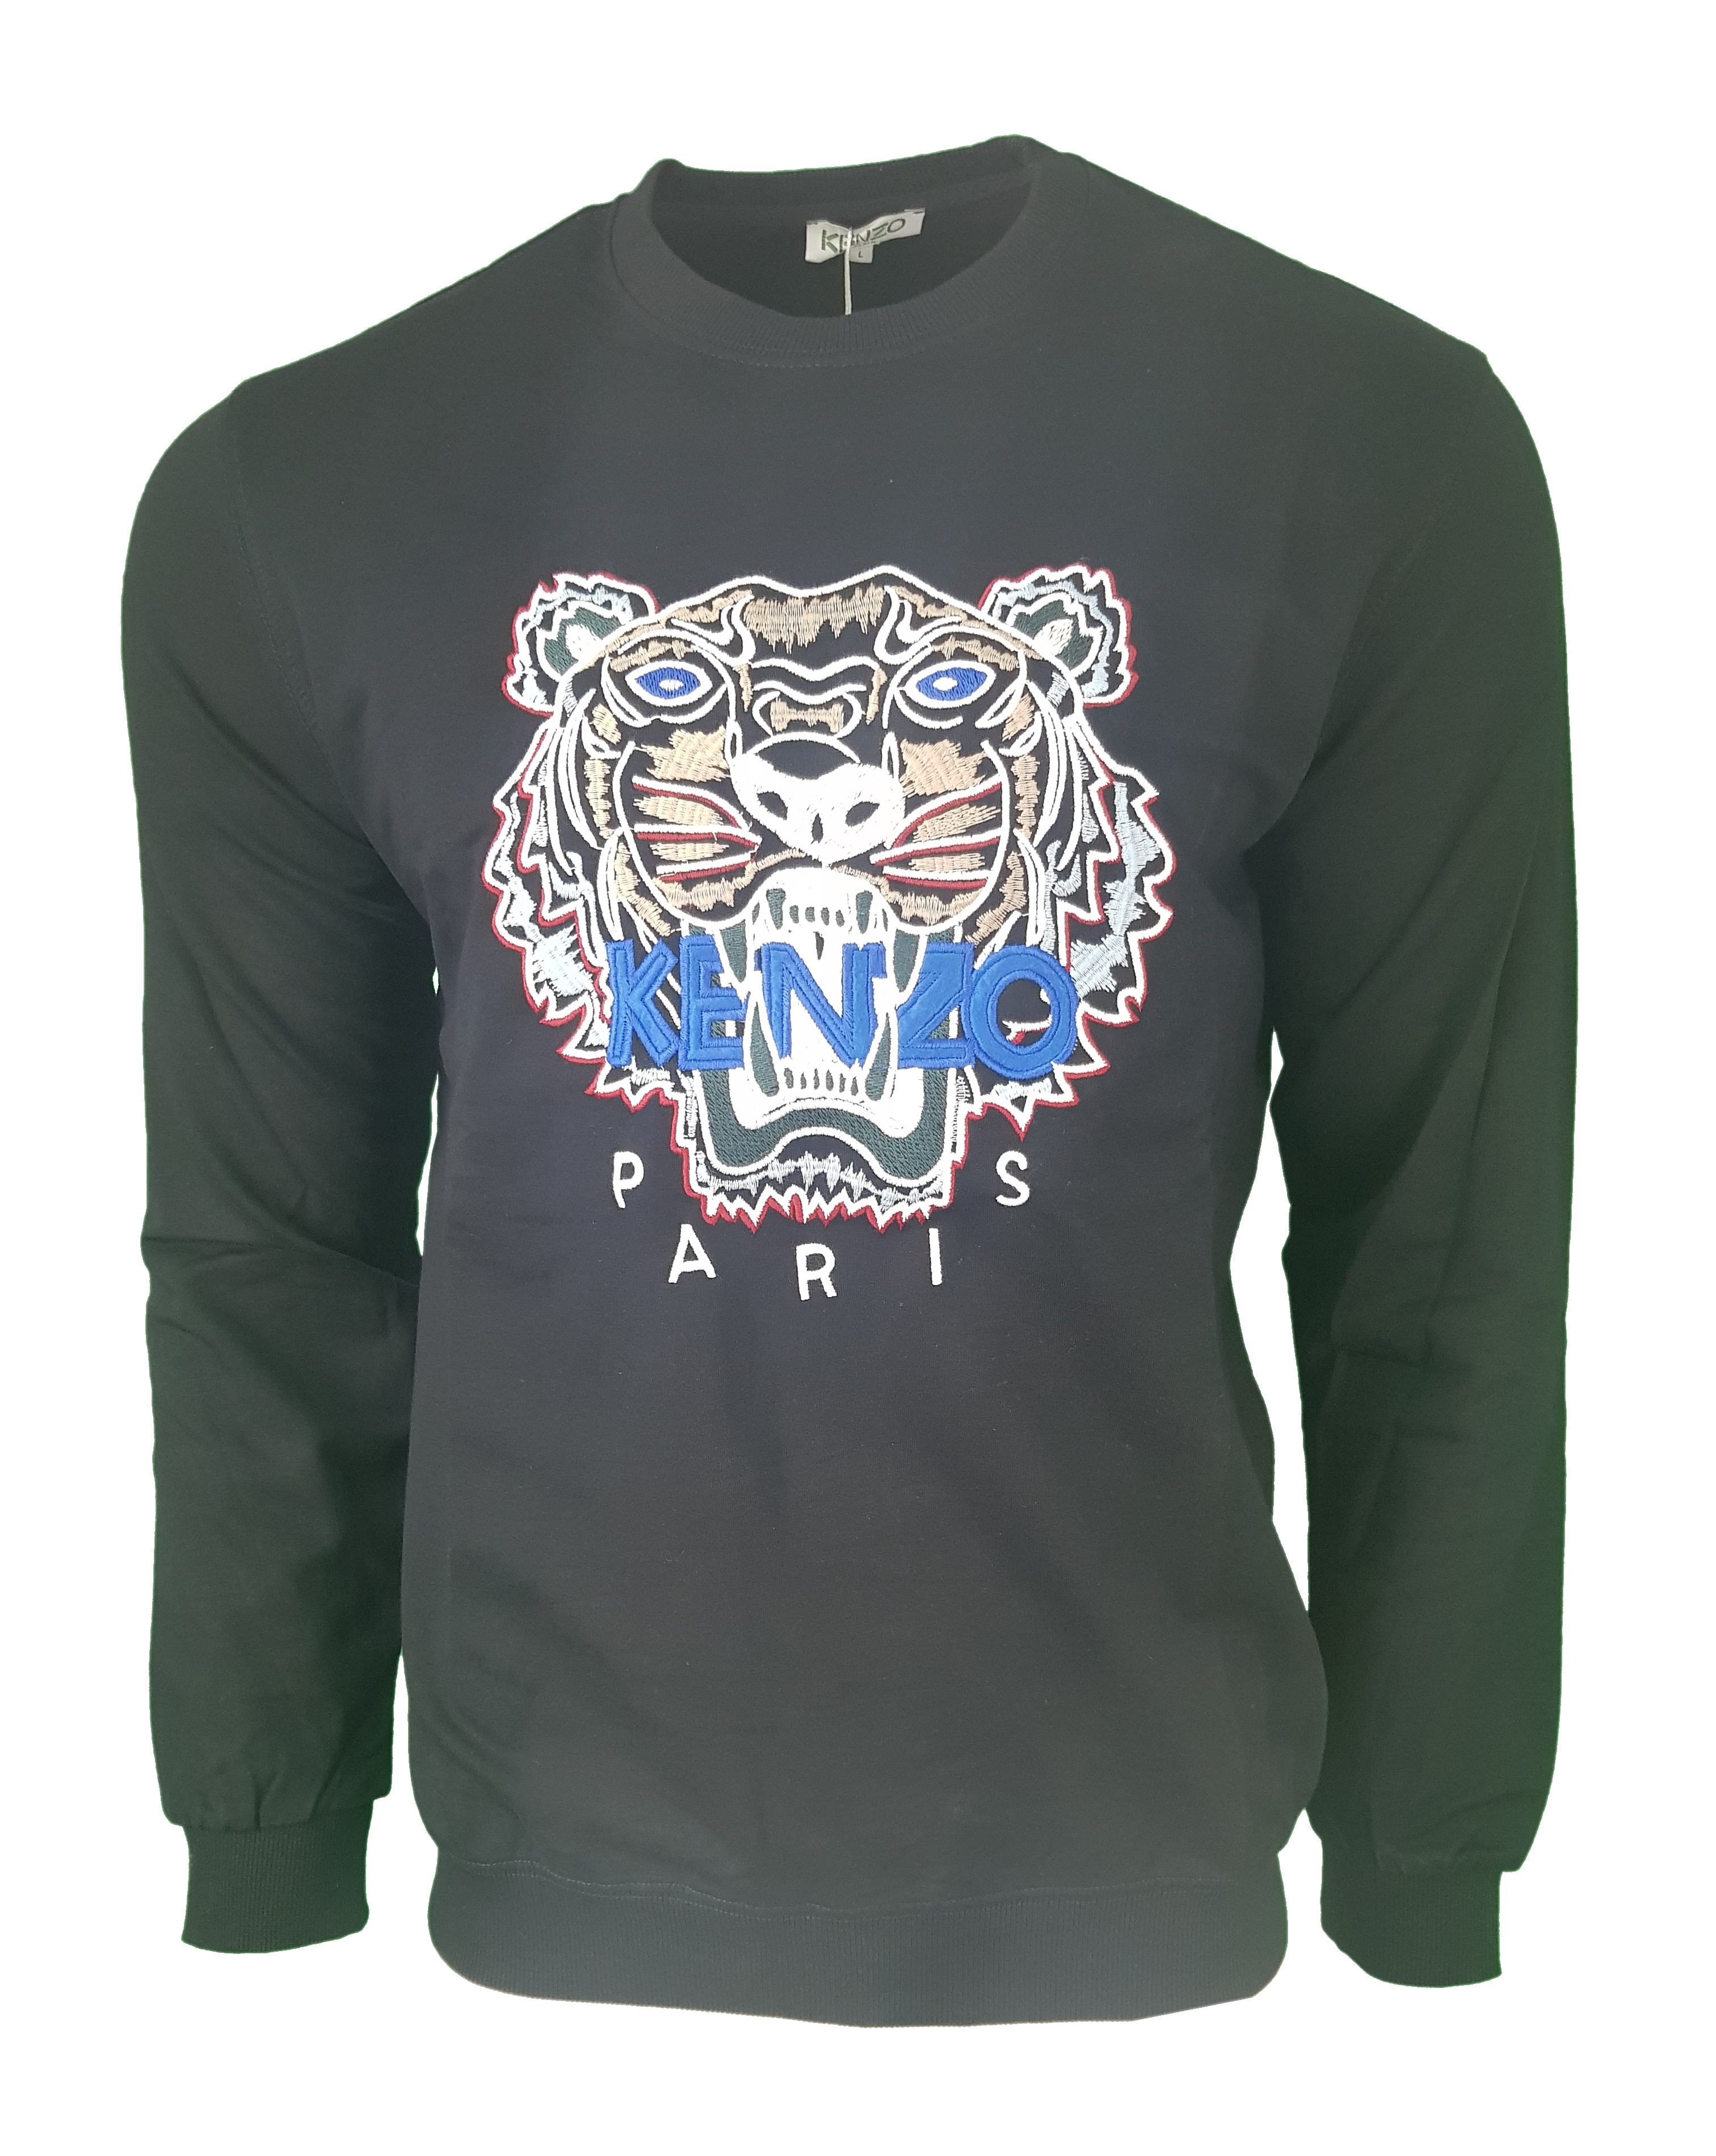 6a7ee964 Kenzo Tiger Embroidered Sweatshirt in Navy Blue with Brown Tiger ...